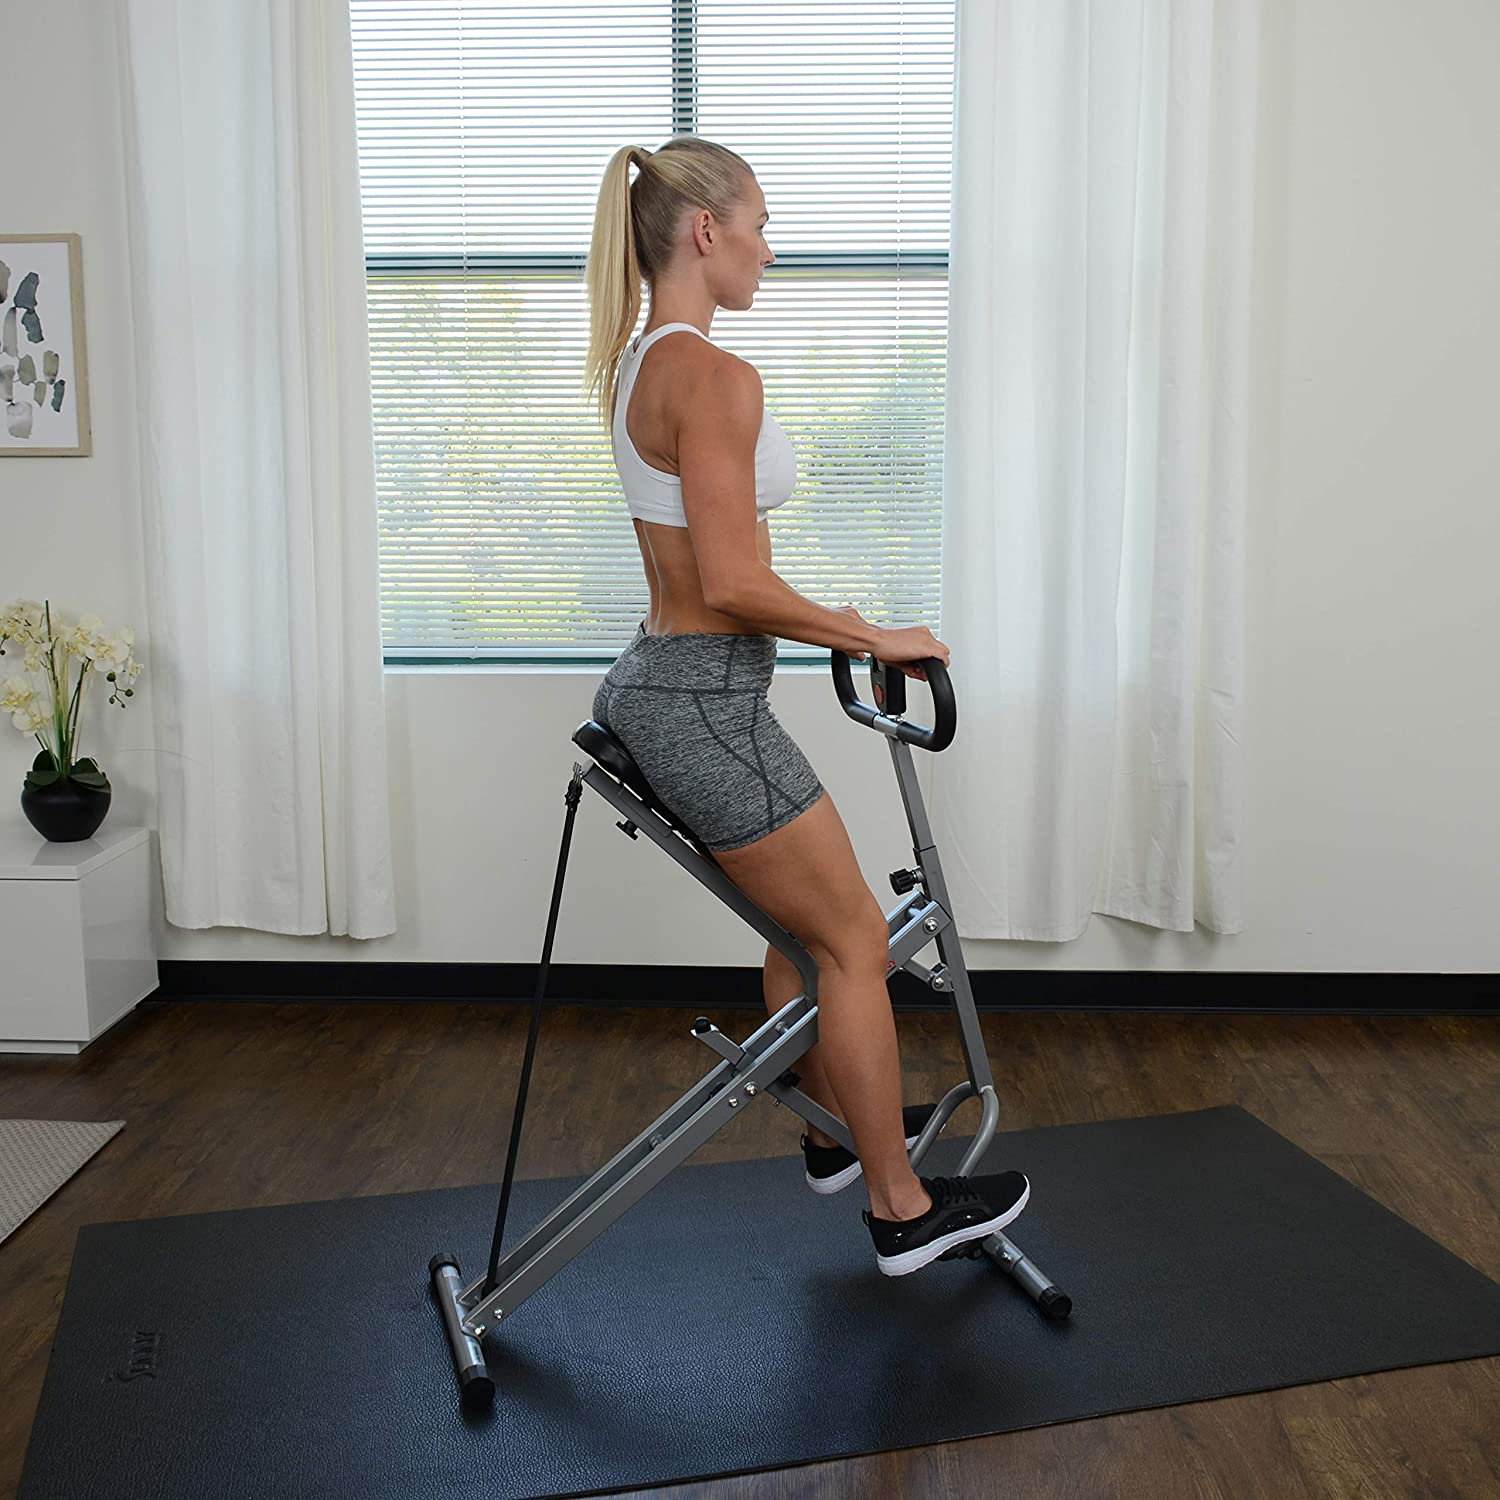 SPORTS Squat Assist Row-N-Ride Trainer for Squat Exercise and Glutes Workout